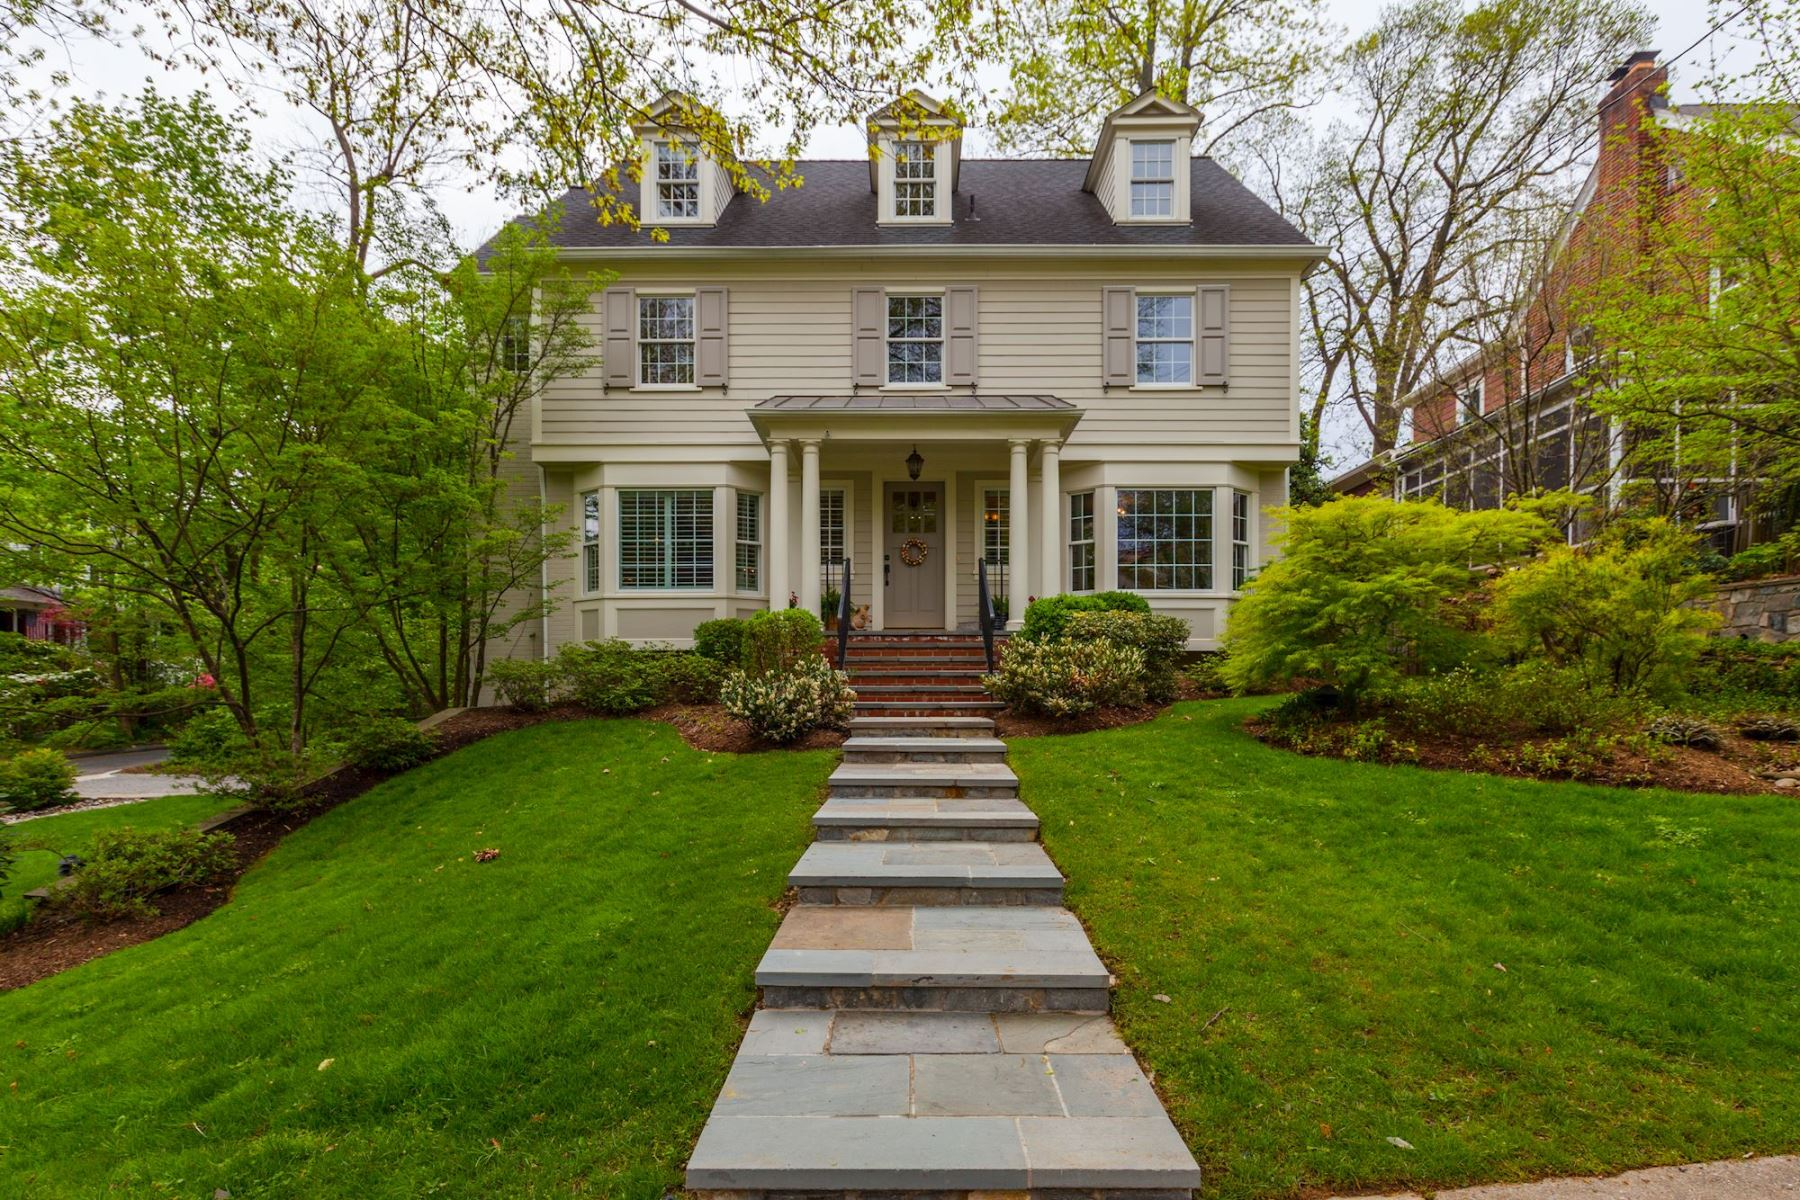 Single Family Home for Sale at 3800 Underwood Street, Chevy Chase Chevy Chase, Maryland, 20815 United States